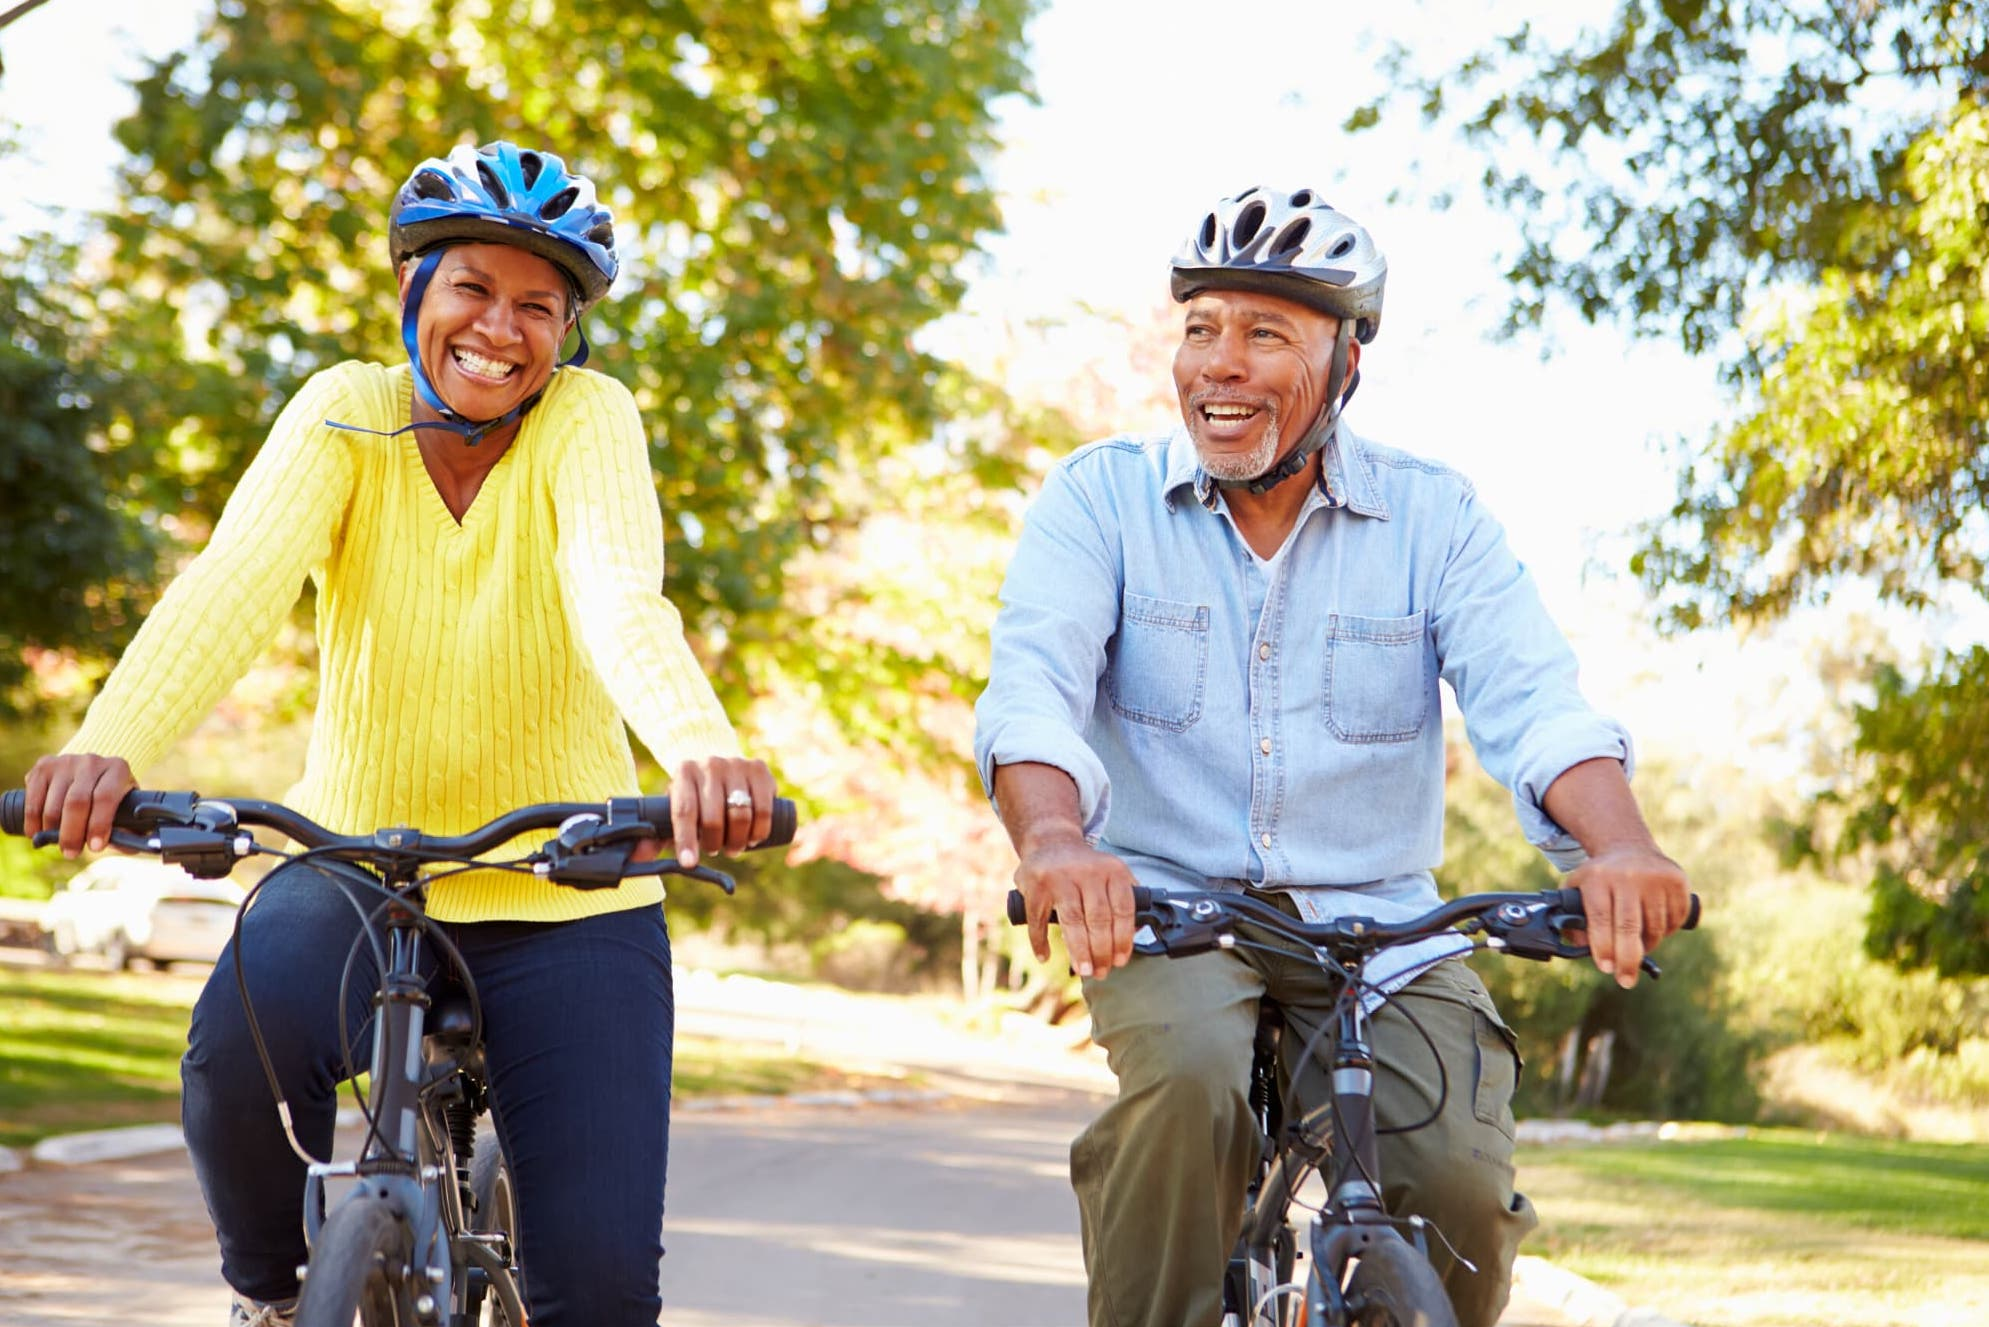 Retirees on a bike ride